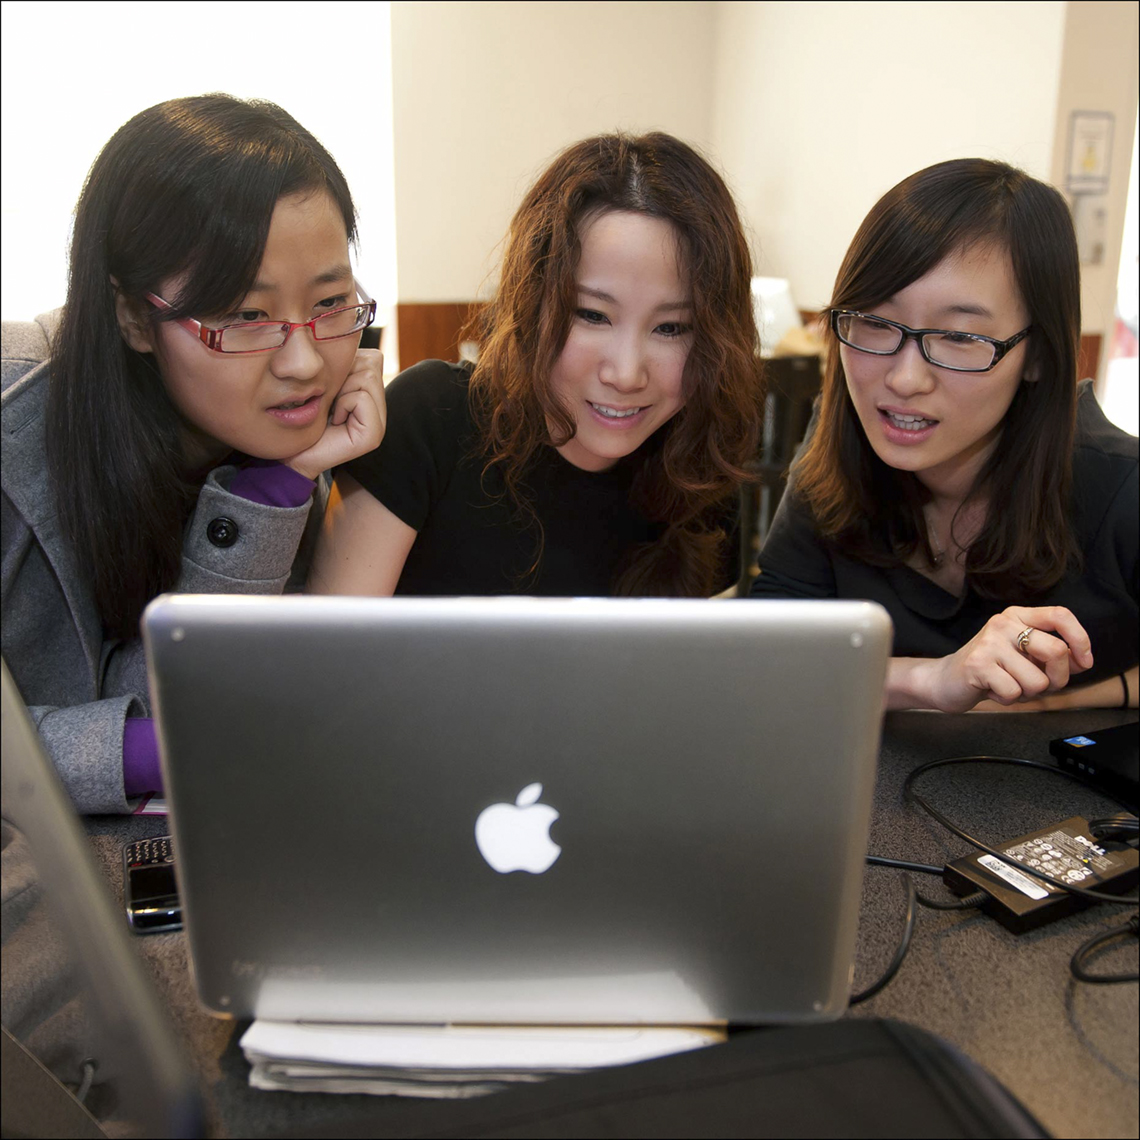 3 Asian women viewing laptop  in academic setting  by Brian Smith